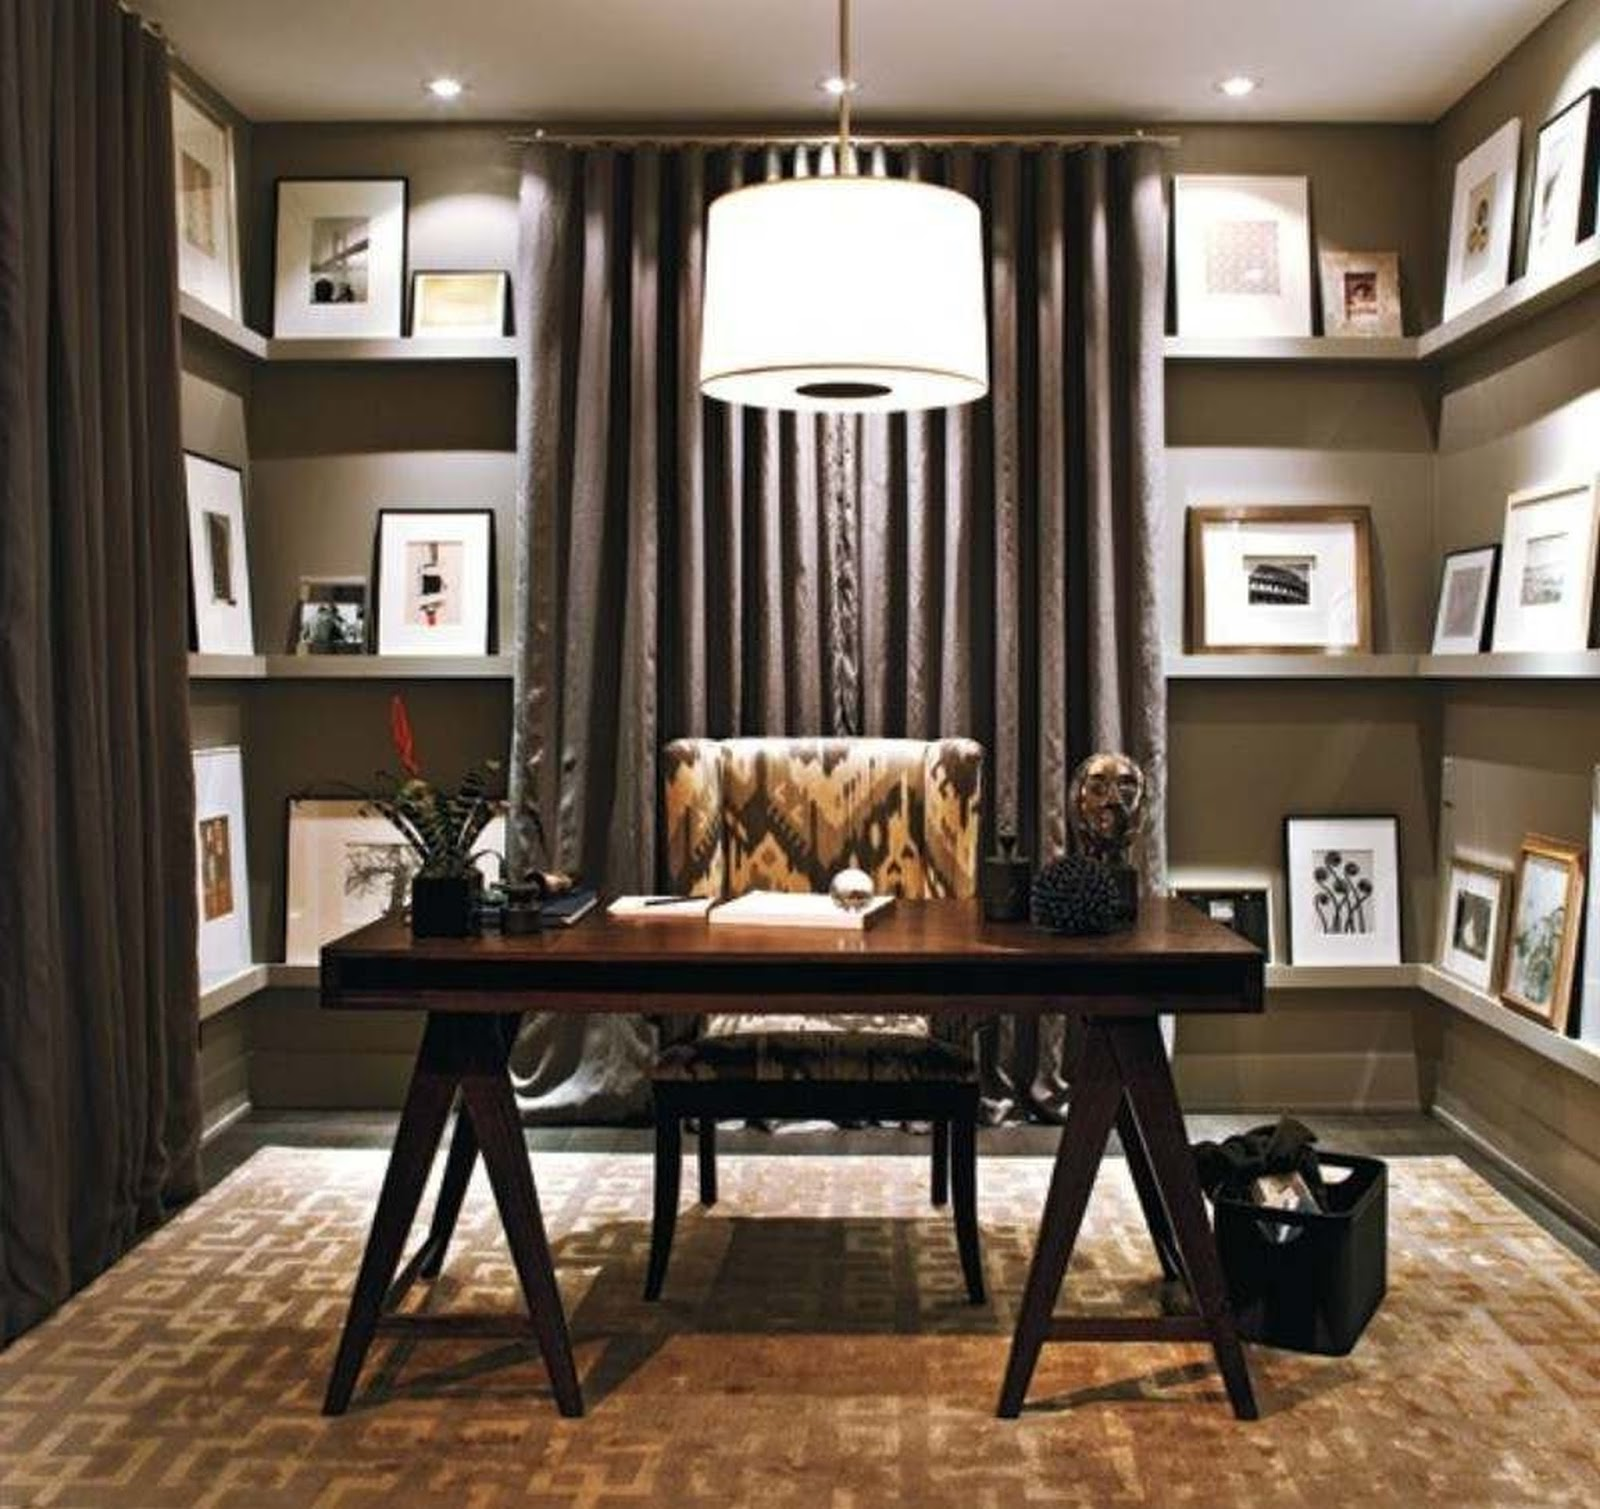 5 Tips How To Decorating An Artistic Home Office: 5 Tips How To Decorating An Artistic Home Office